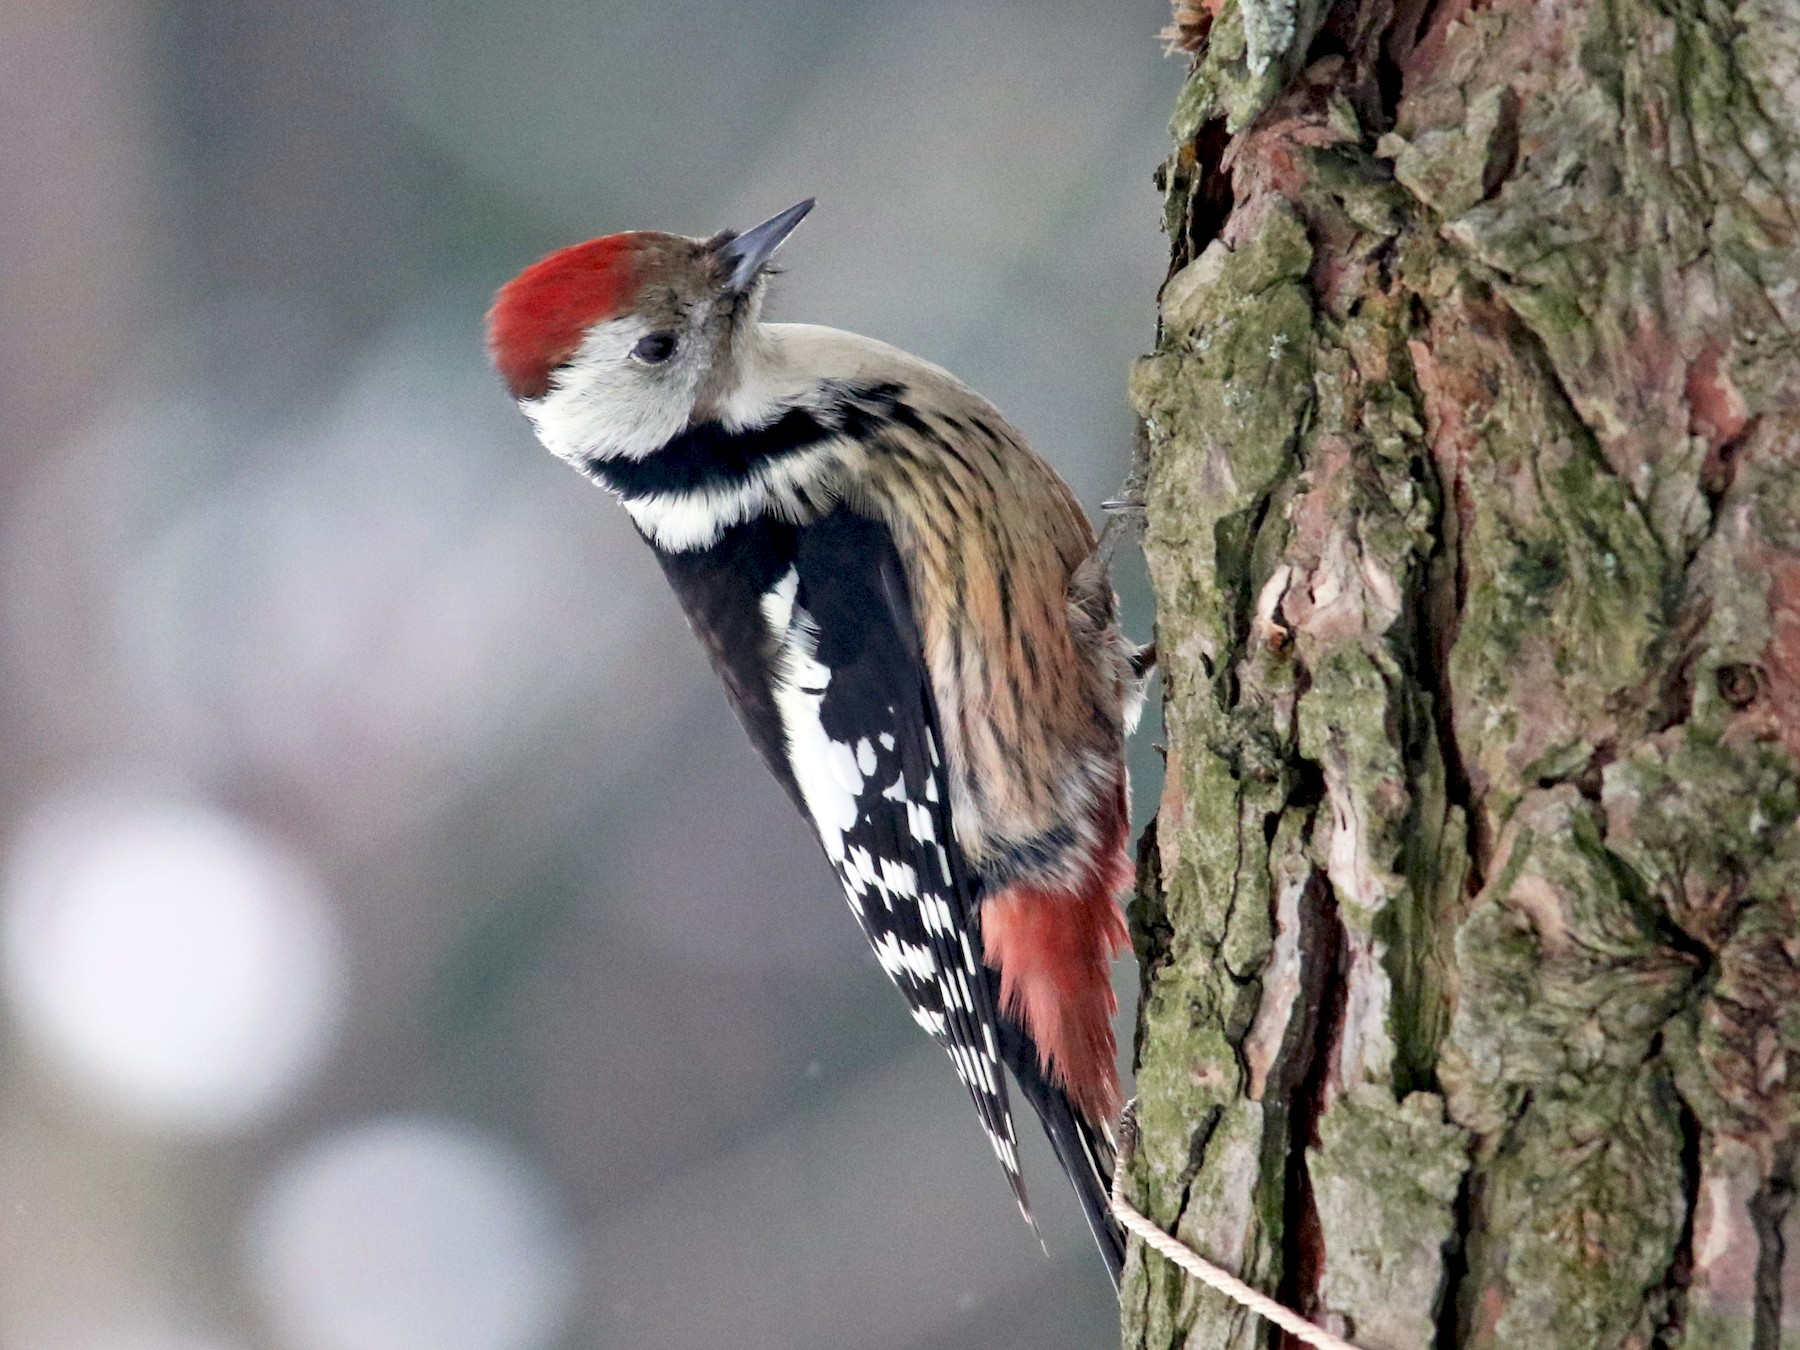 Middle Spotted Woodpecker - Tatyana Korzhitskaya